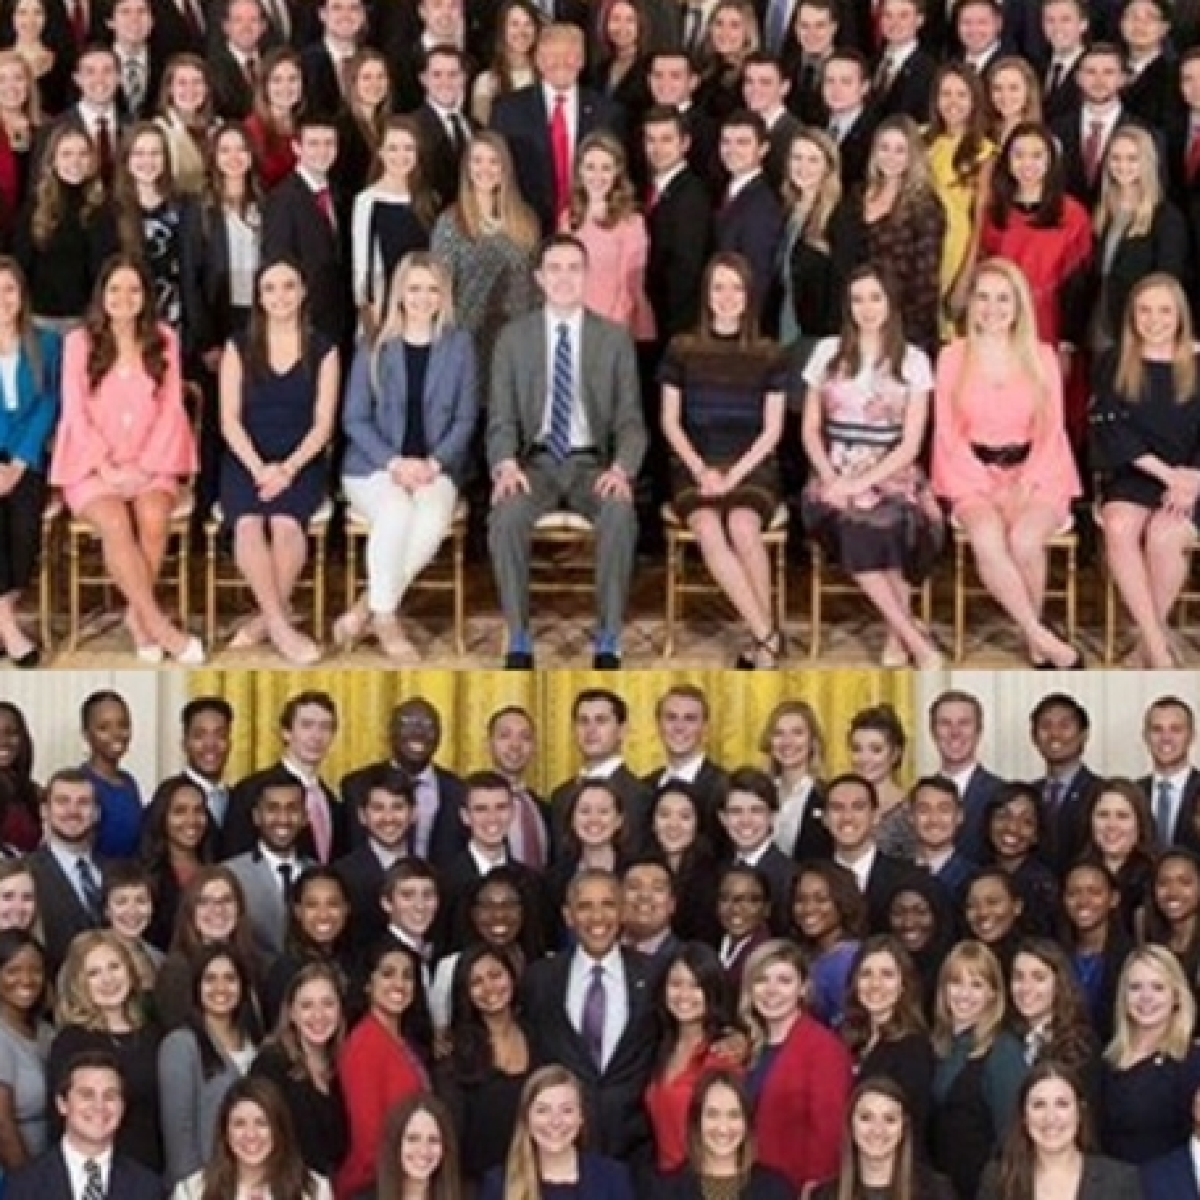 Amid 'Black Lives Matter' protests, here's a look at Trump's batch of interns at the White House